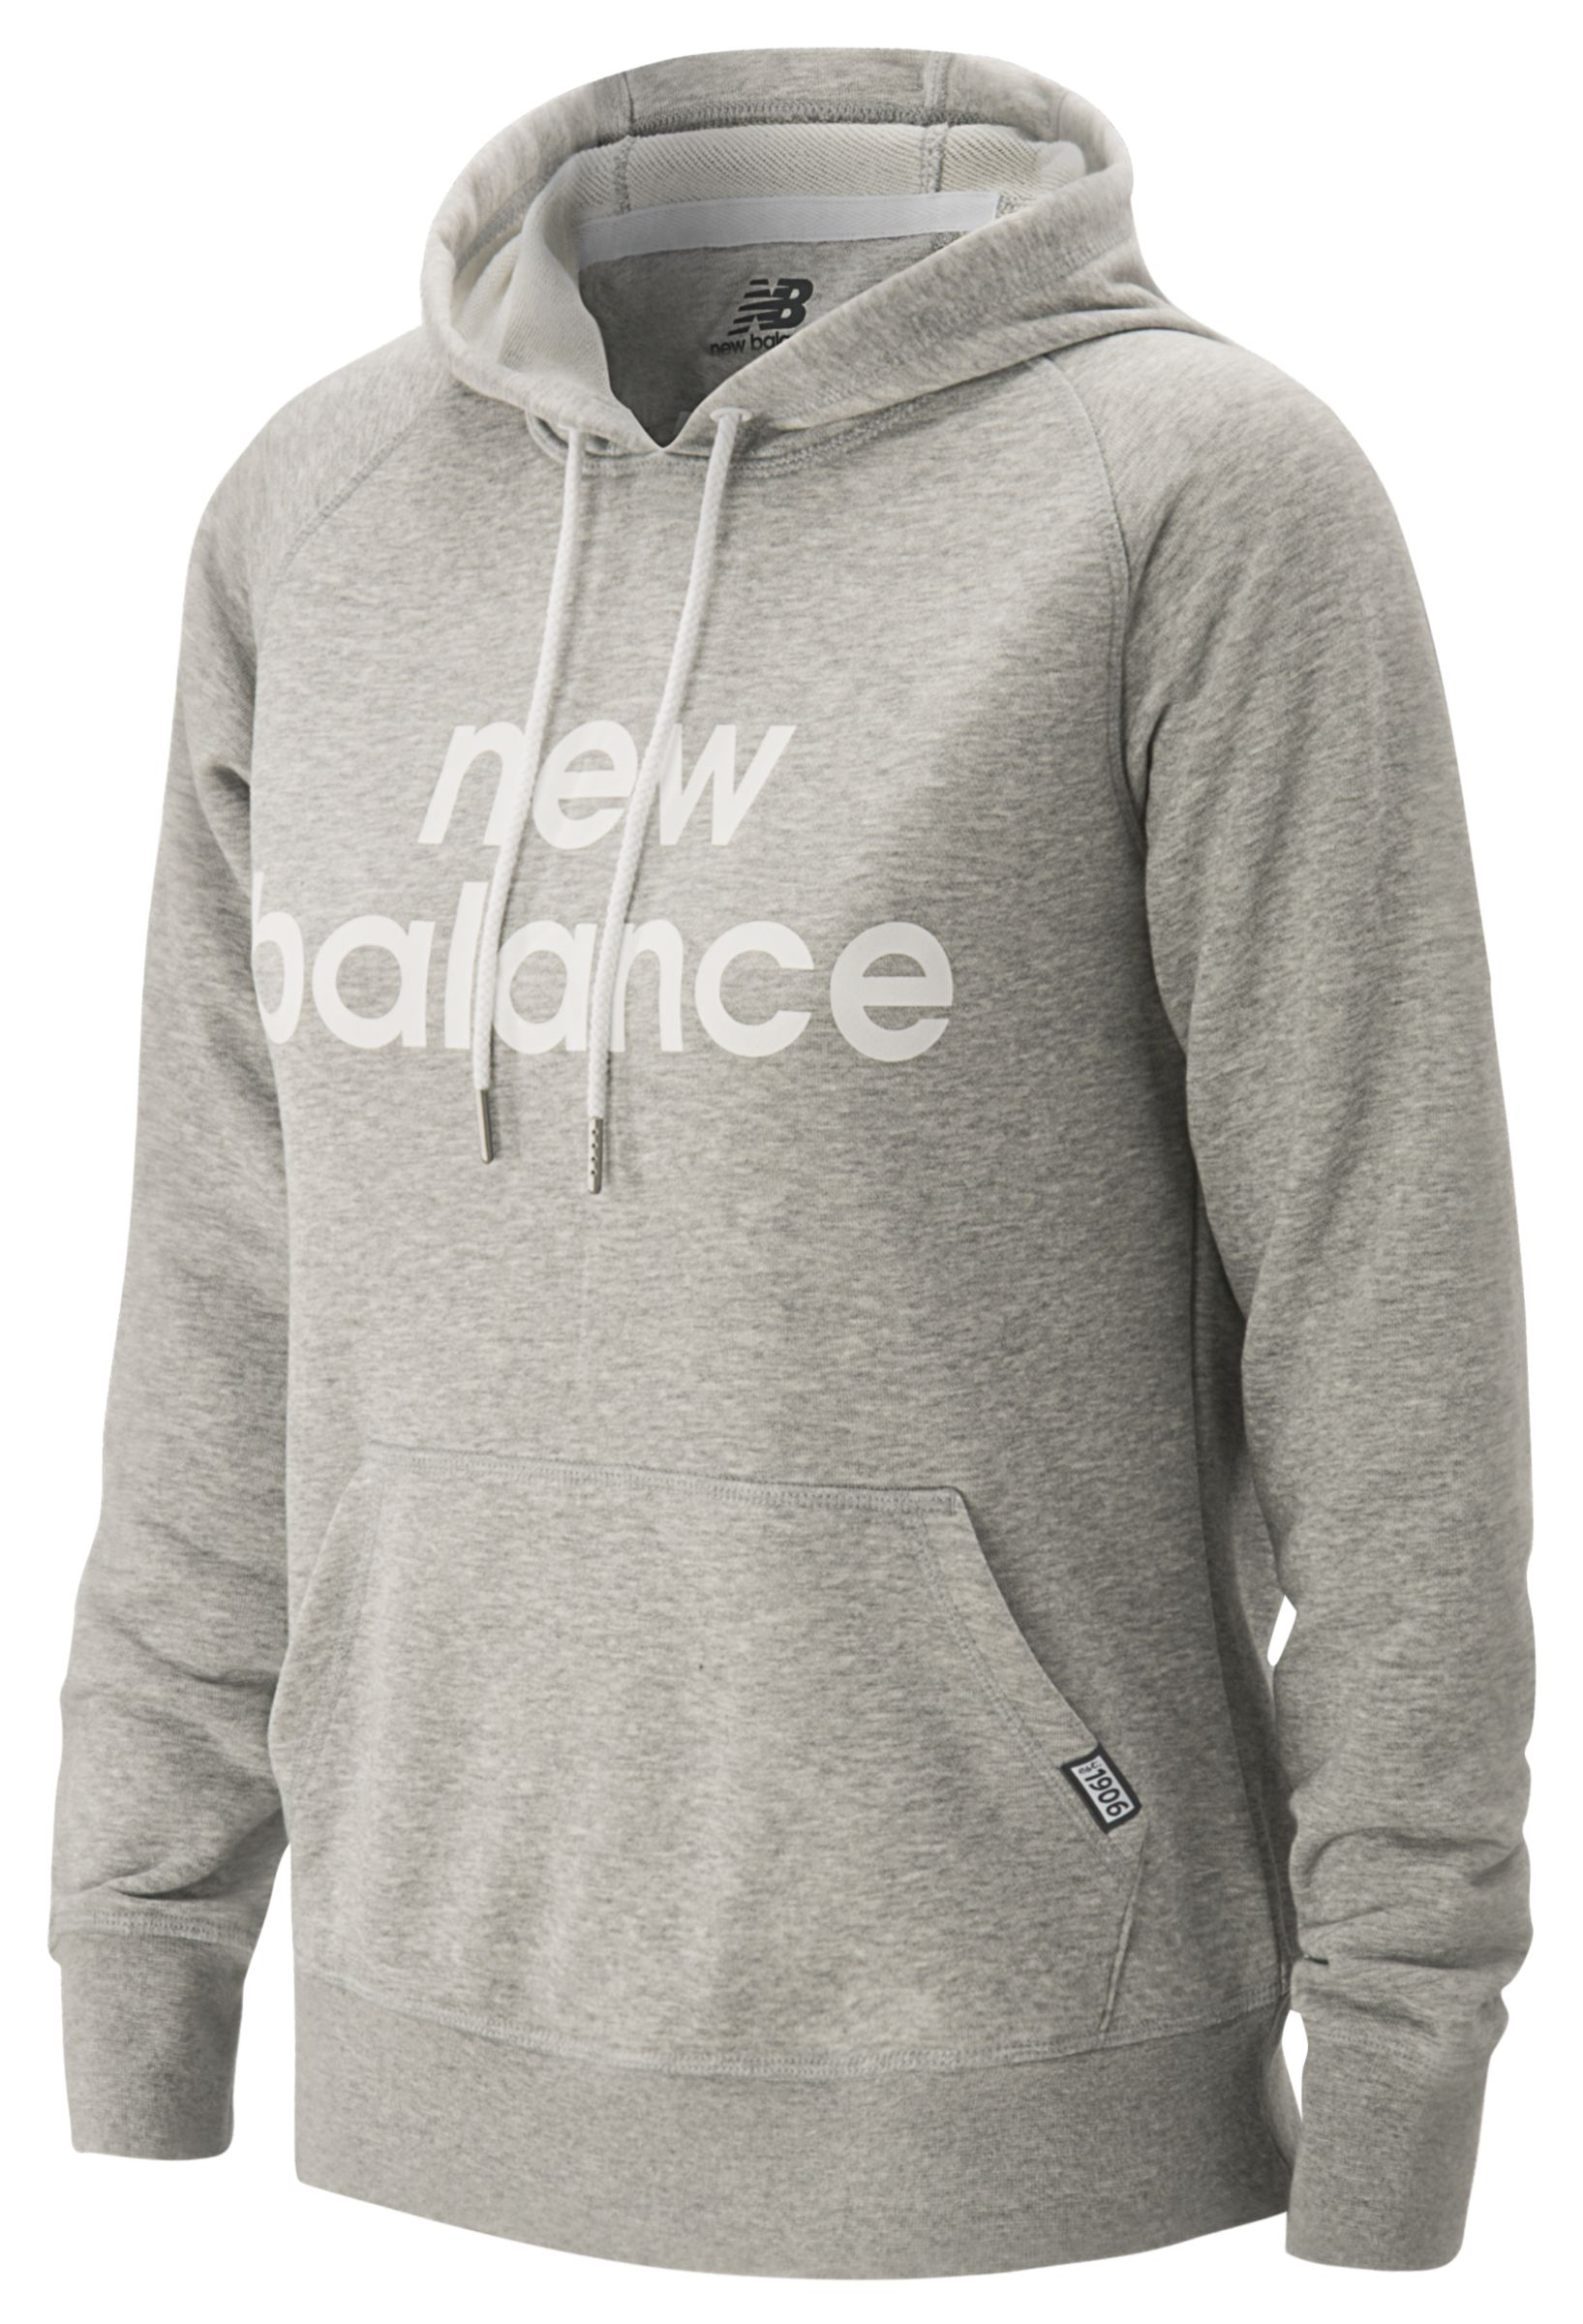 New Balance : Classic Pullover Hoodie : Women's Casual : WT71599AG